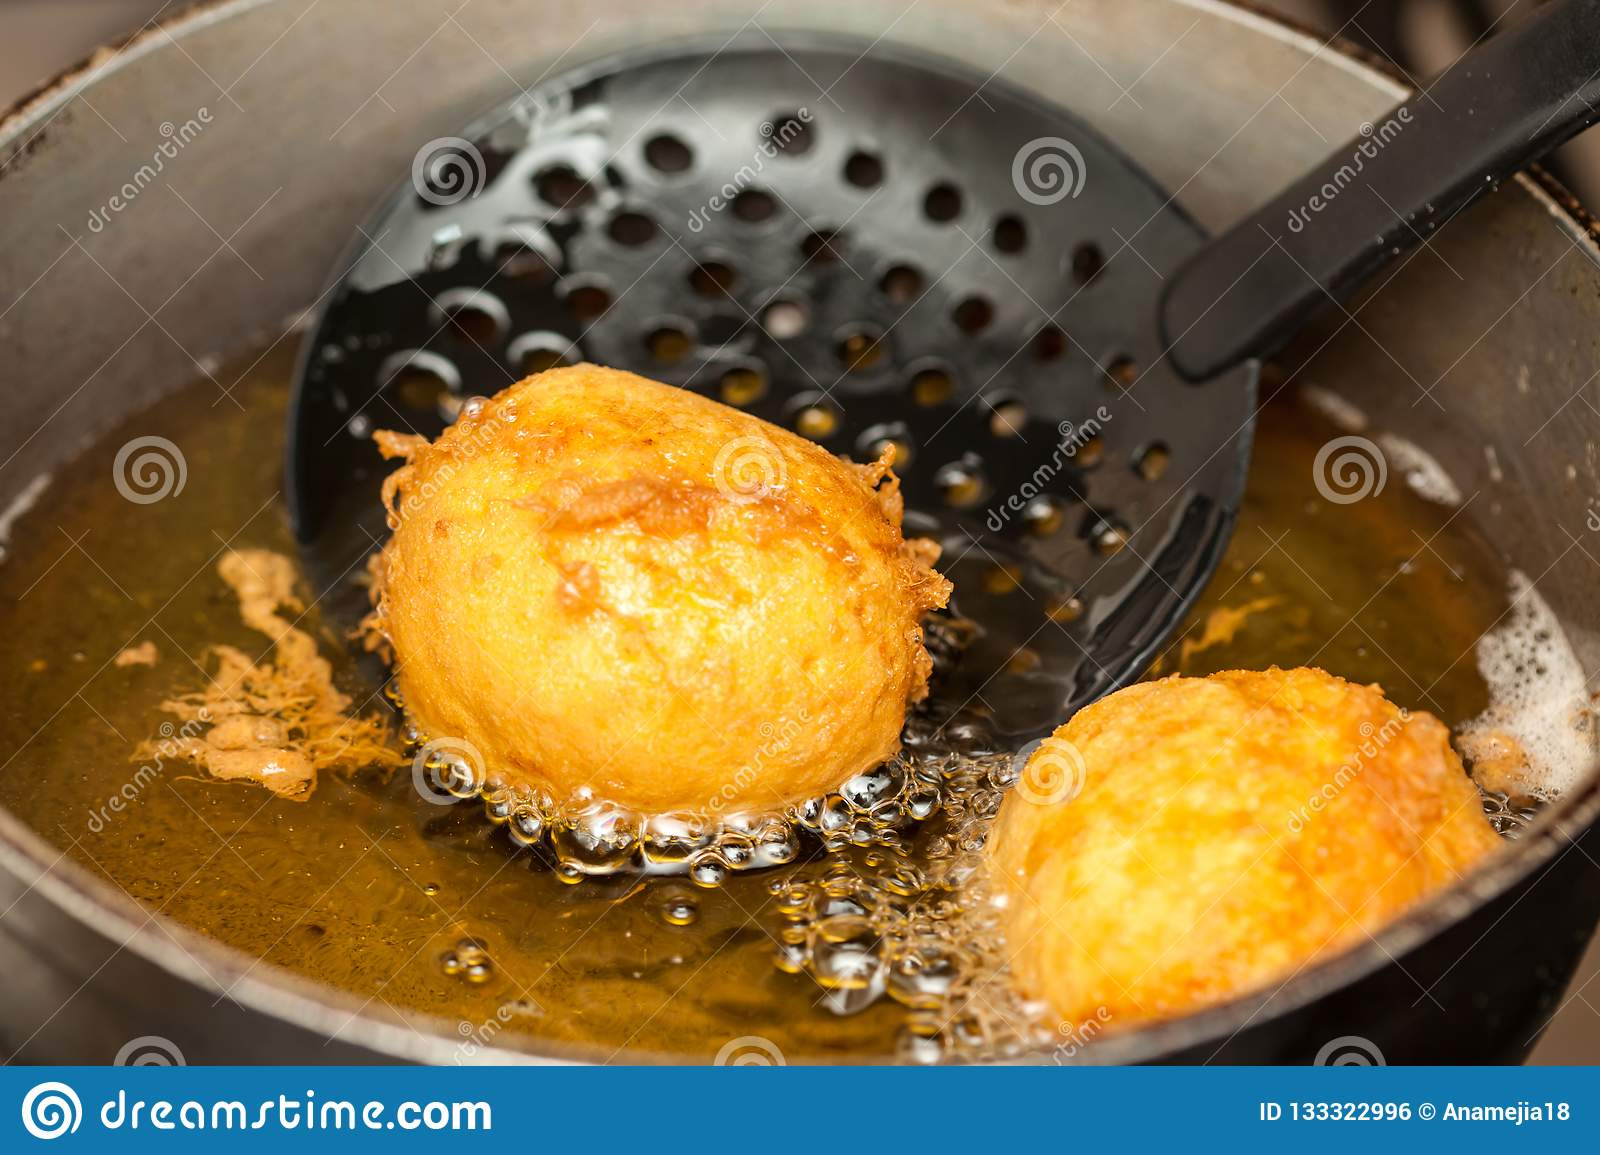 Preparation steps of traditional Colombian dish called stuffed potatoes